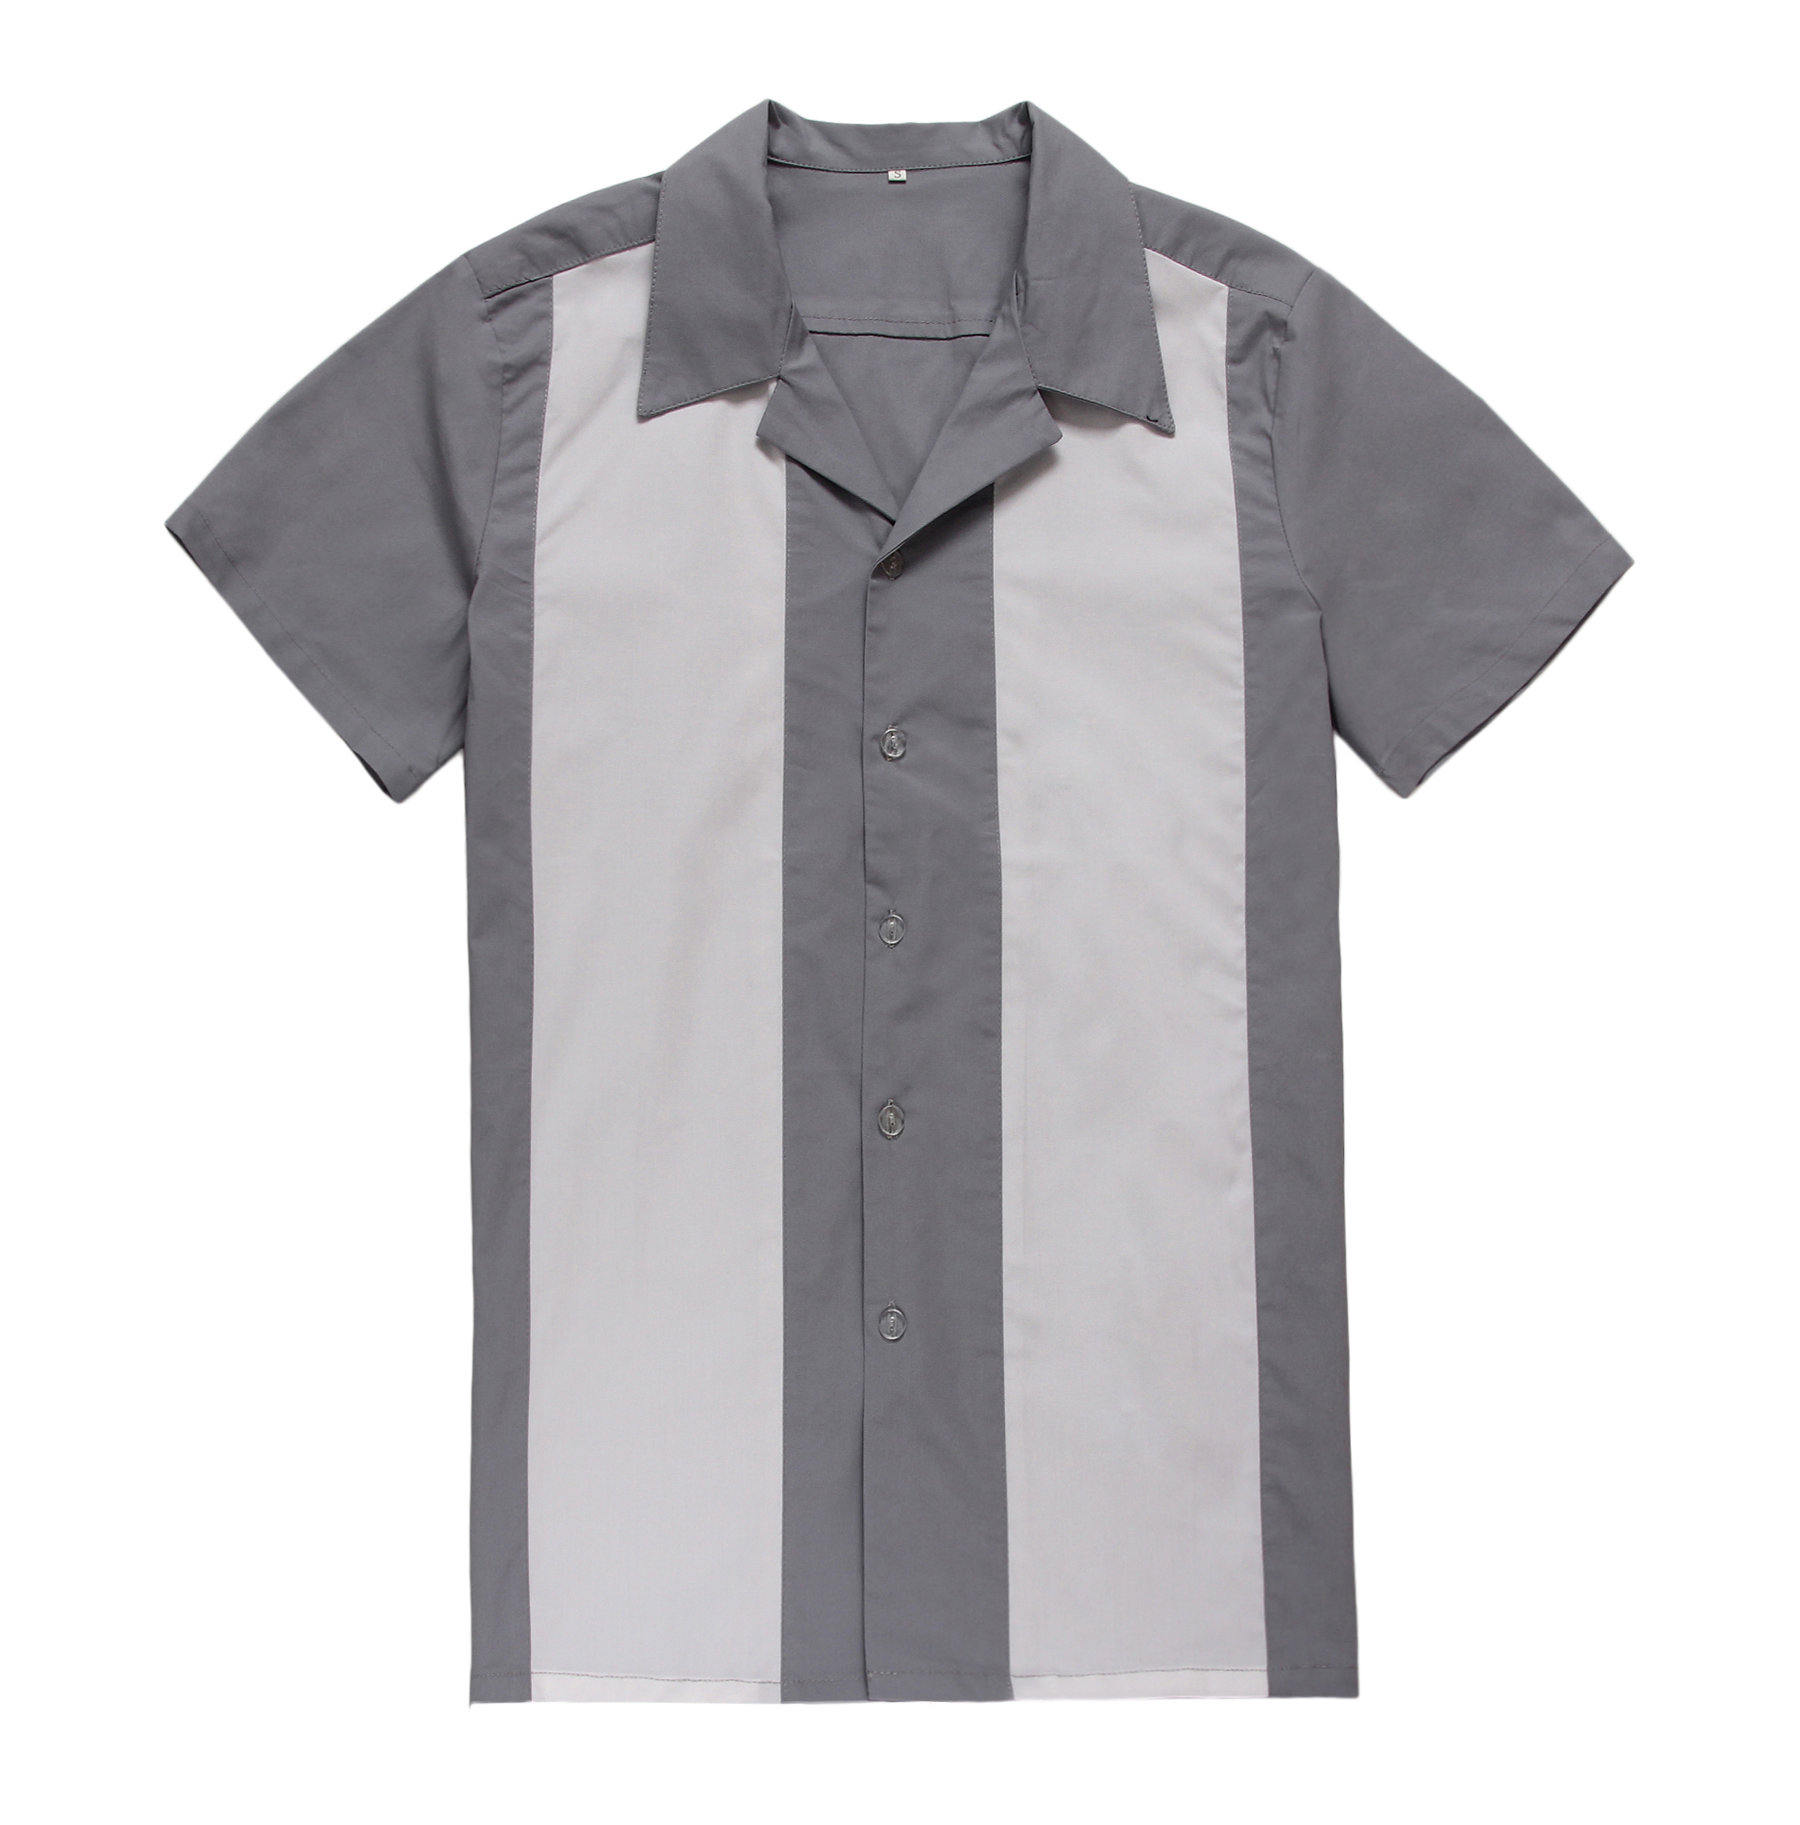 Compare Prices on Shirt Work- Online Shopping/Buy Low Price Shirt ...